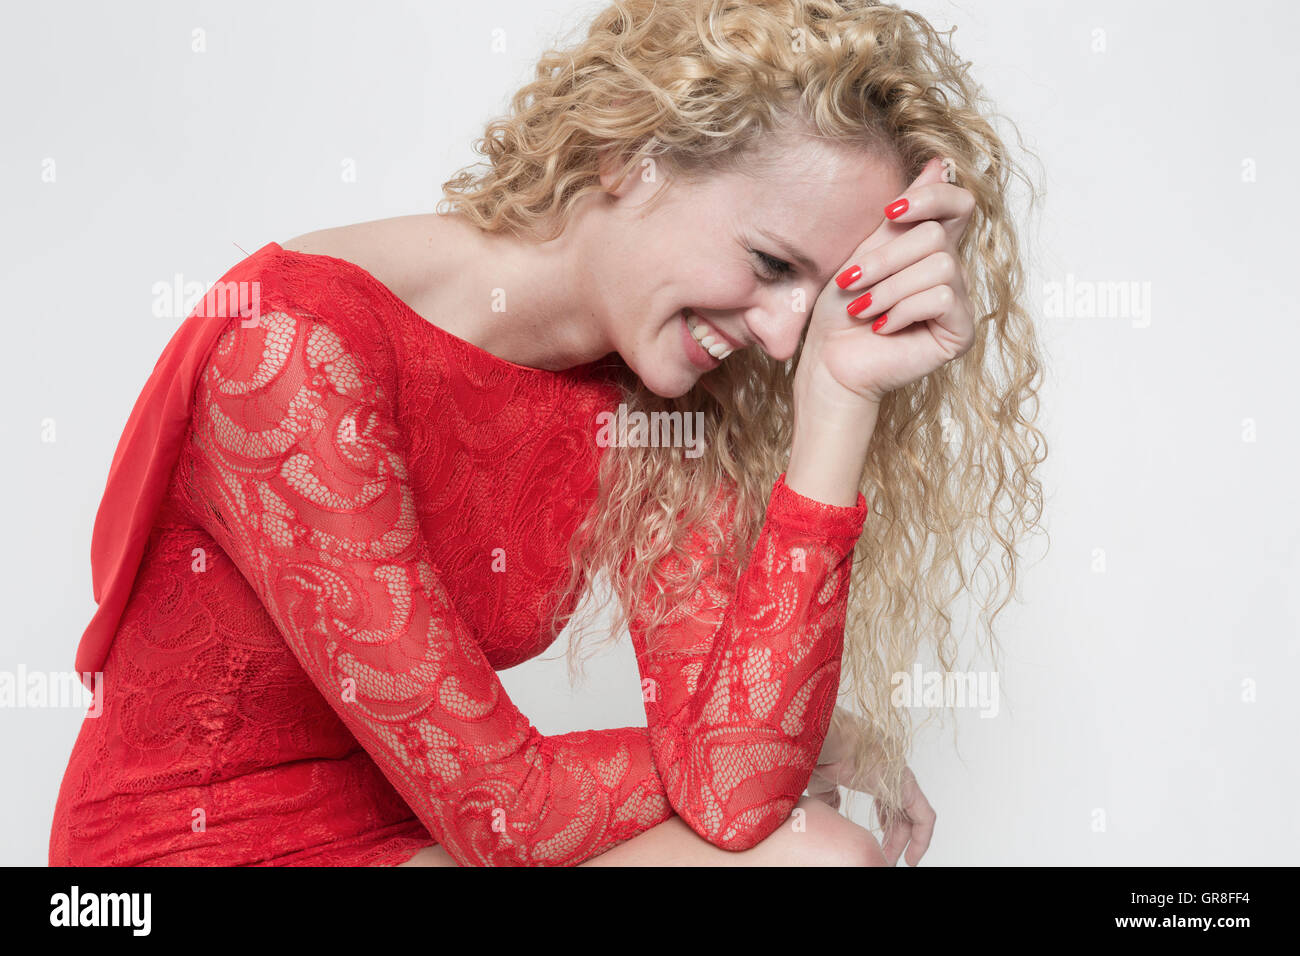 Hearty Laugh Of A Pretty Young Woman In Red Cocktail Dress - Stock Image